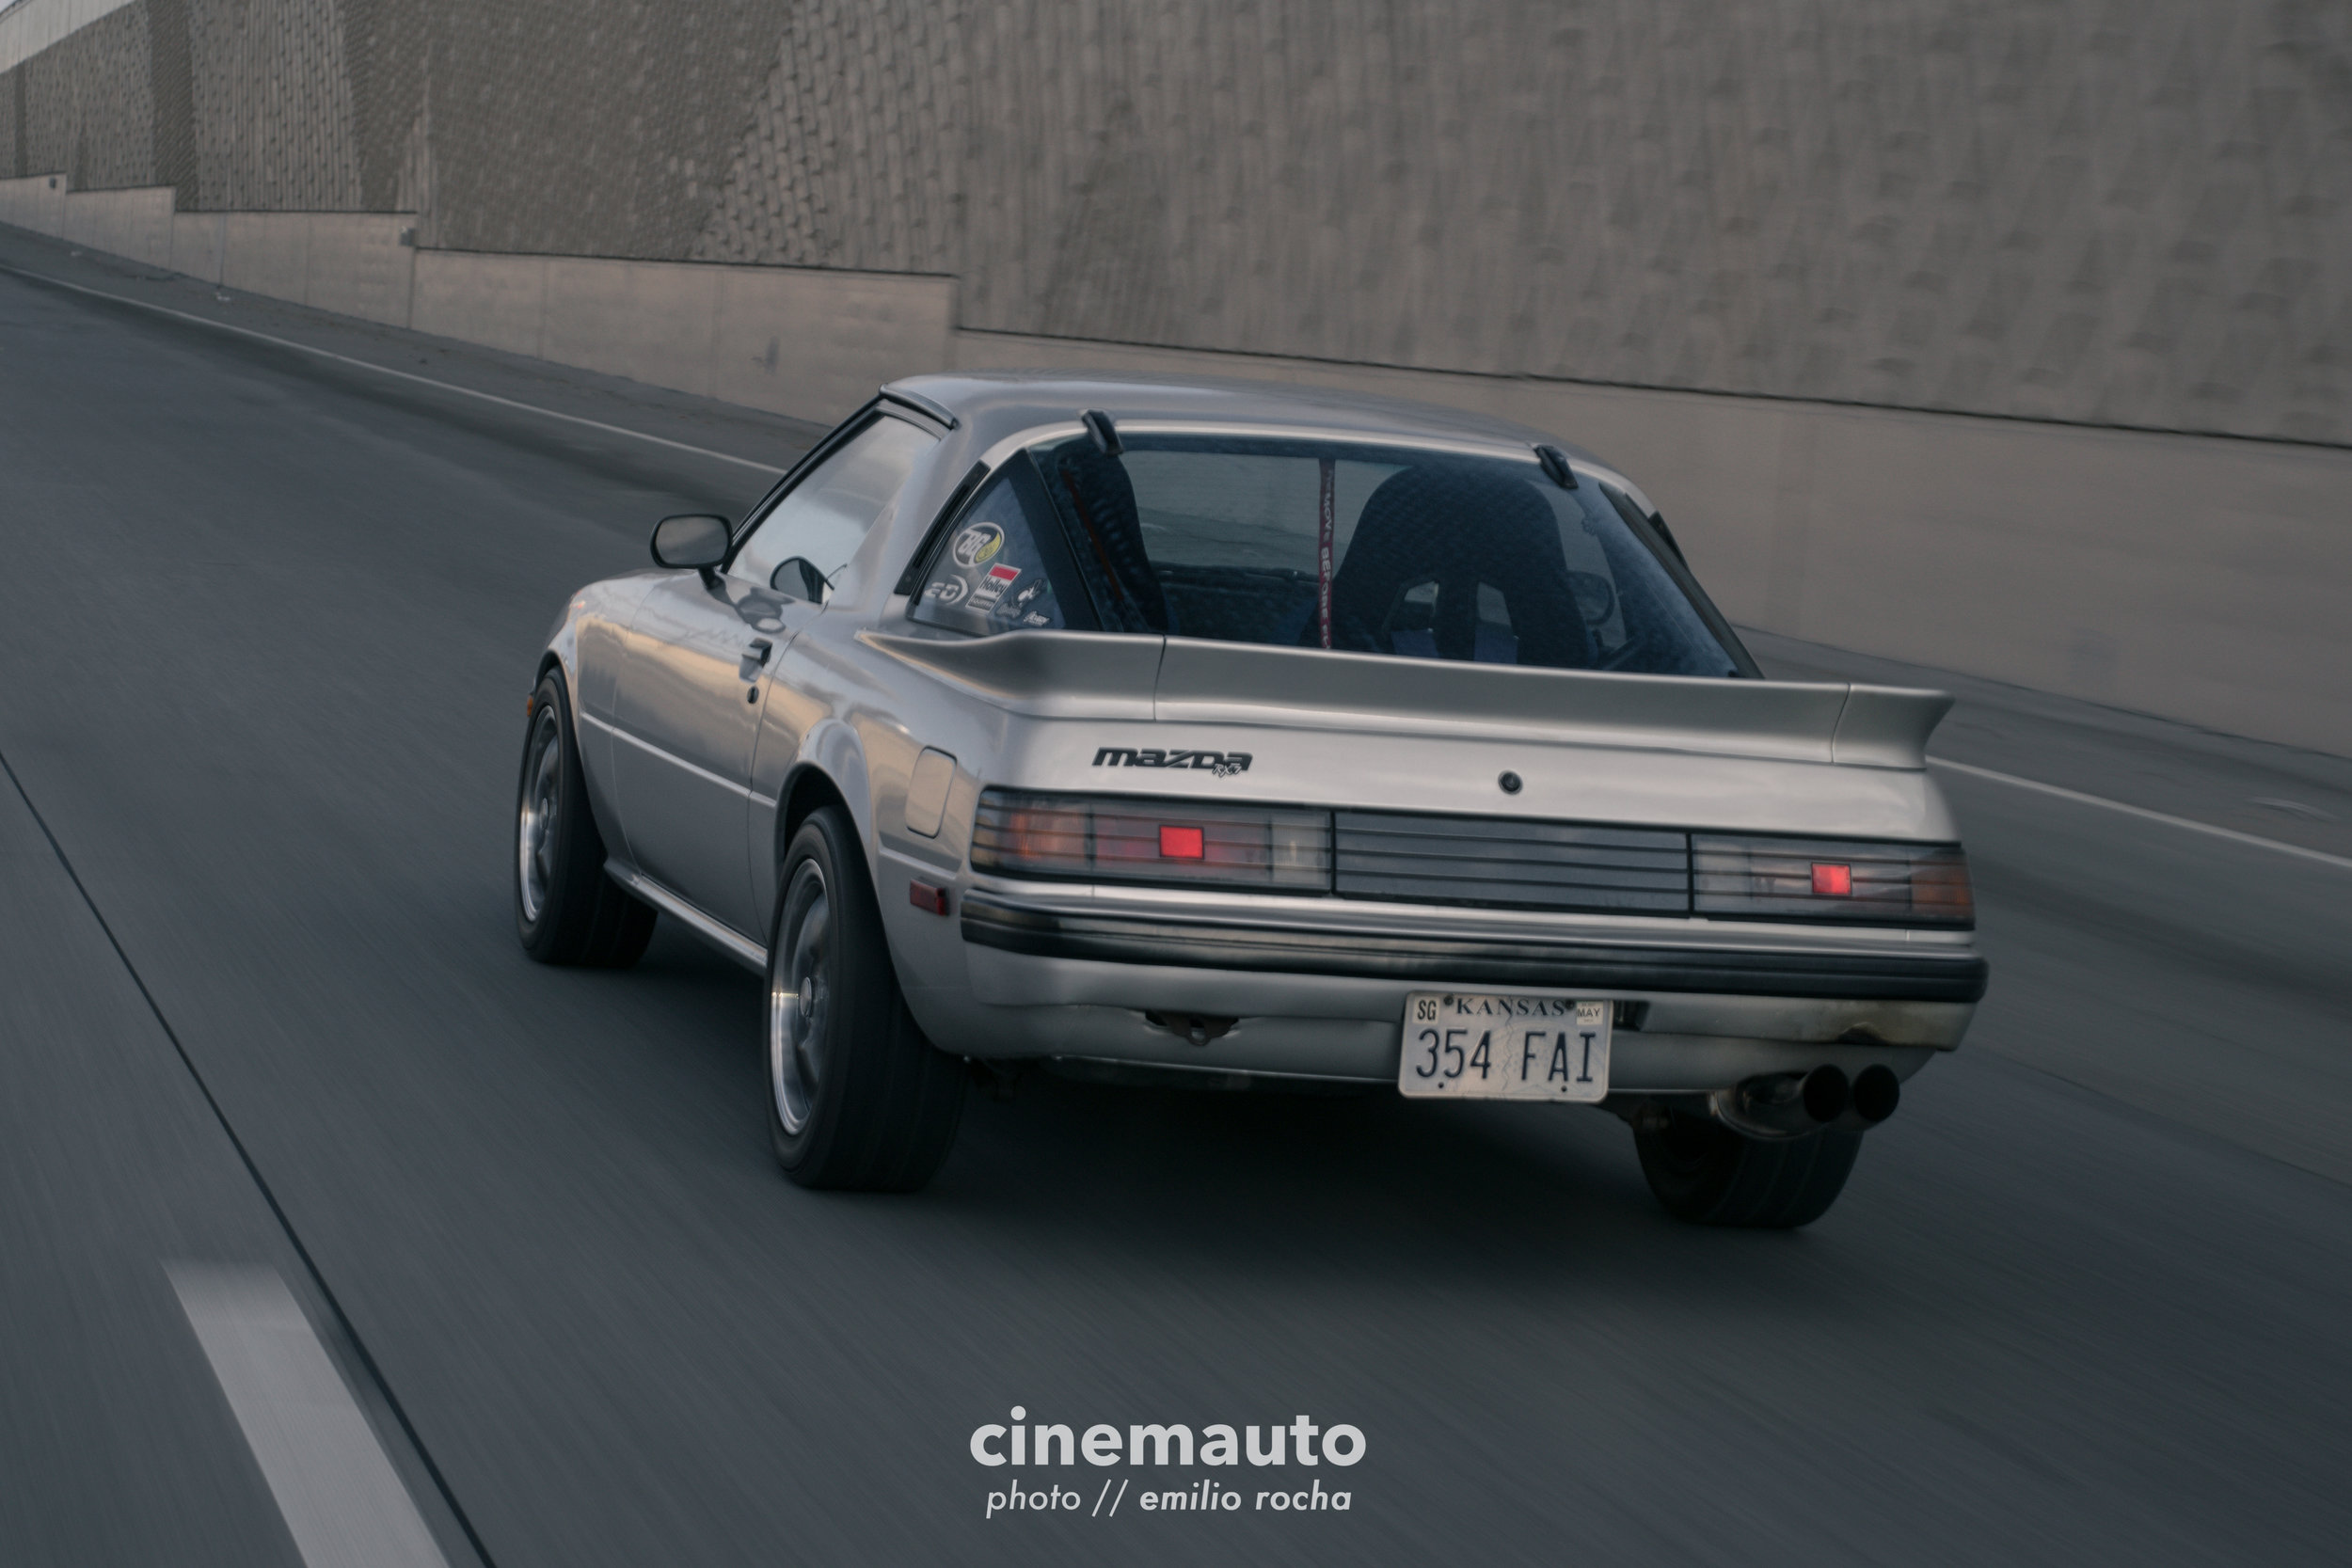 Cinemauto-RX7-9.jpg